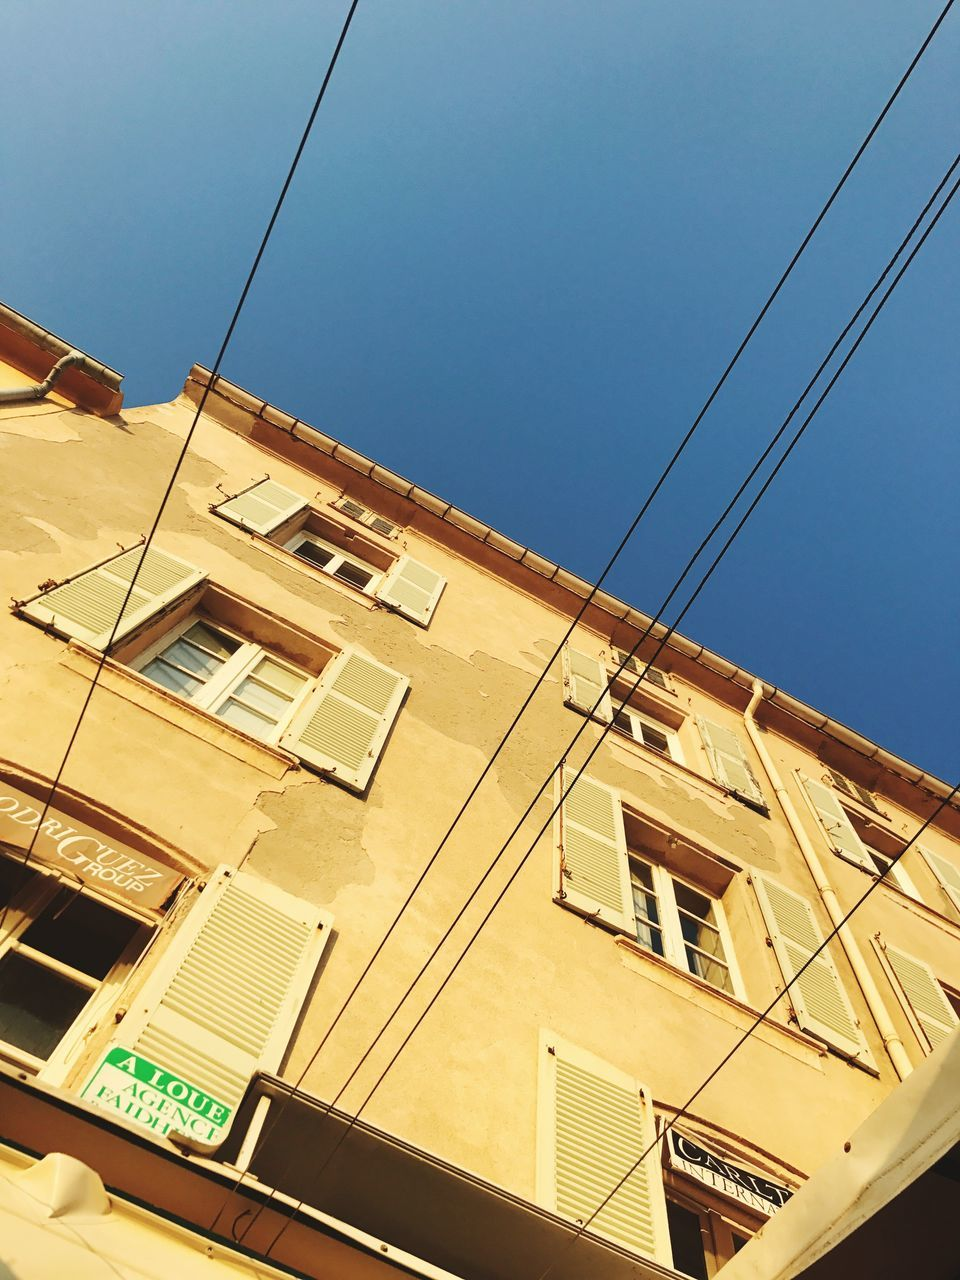 architecture, cable, building exterior, built structure, low angle view, window, residential building, outdoors, no people, day, sky, clear sky